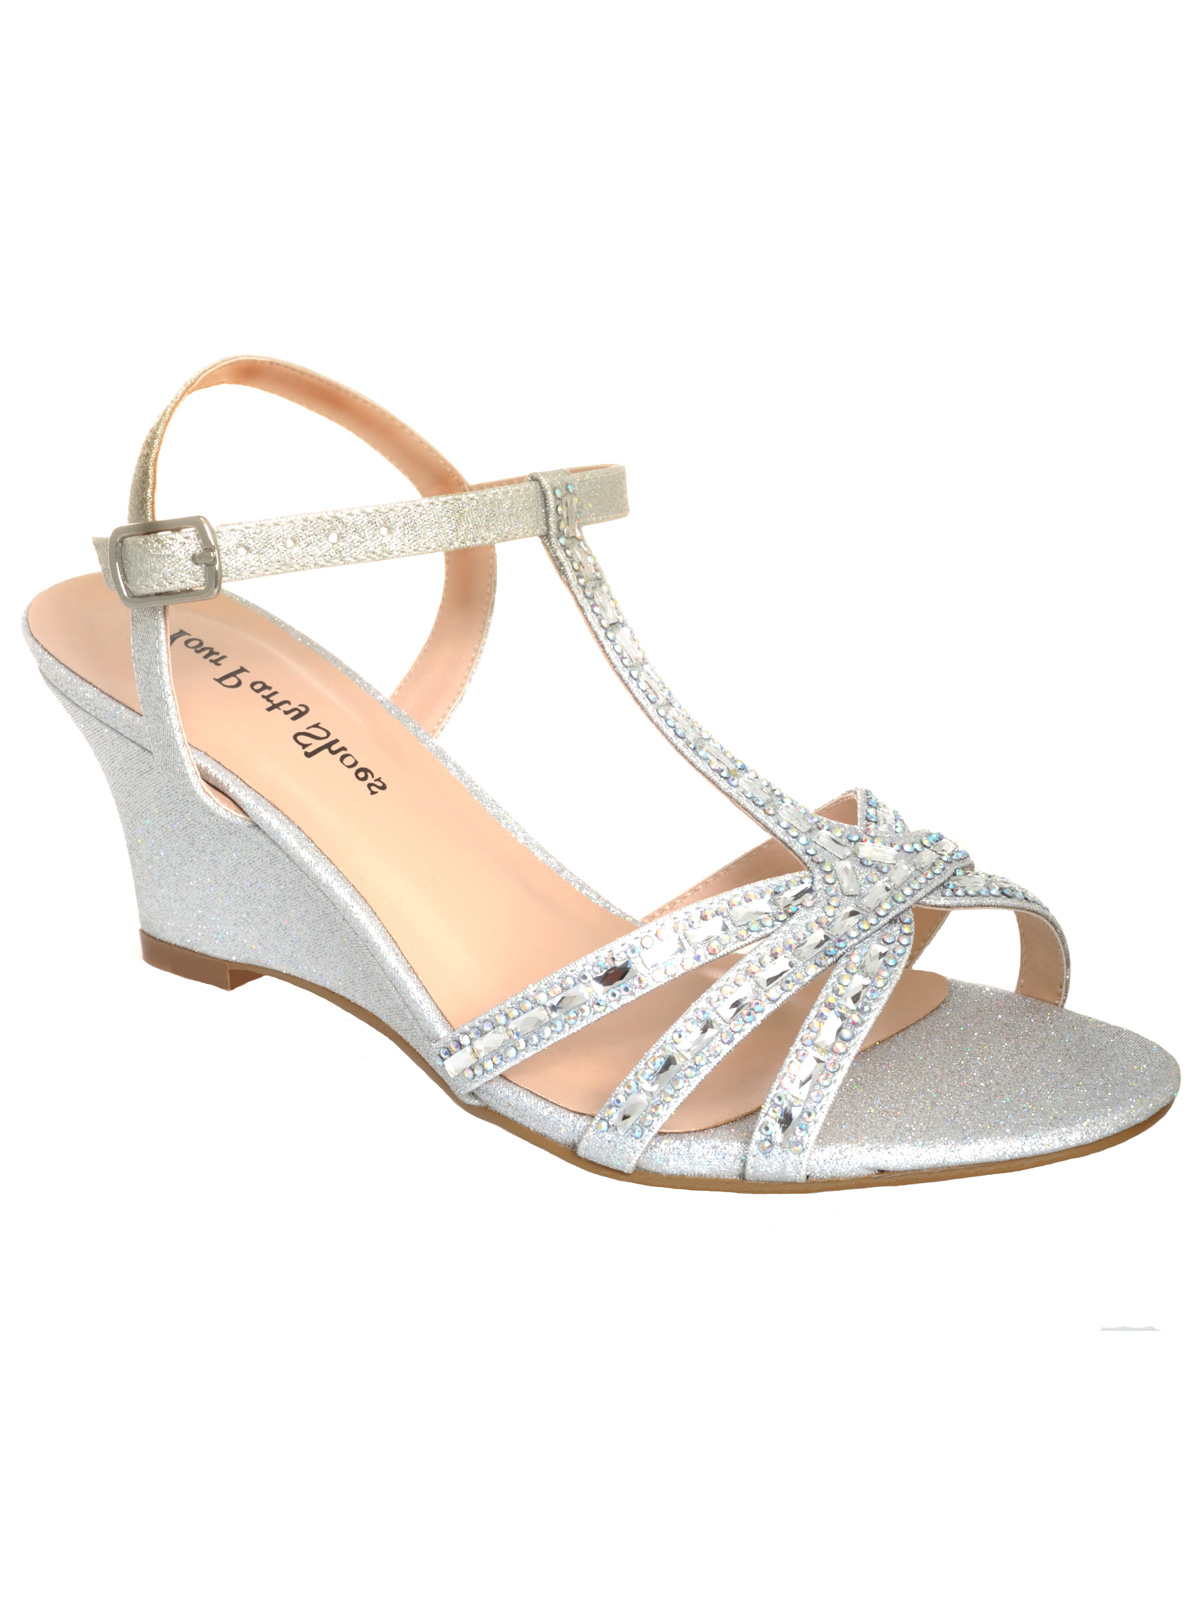 Wedding Prom Sandals your party shoes 803 mia strappy silver prom sandalsdressprom net sling back sandals 803